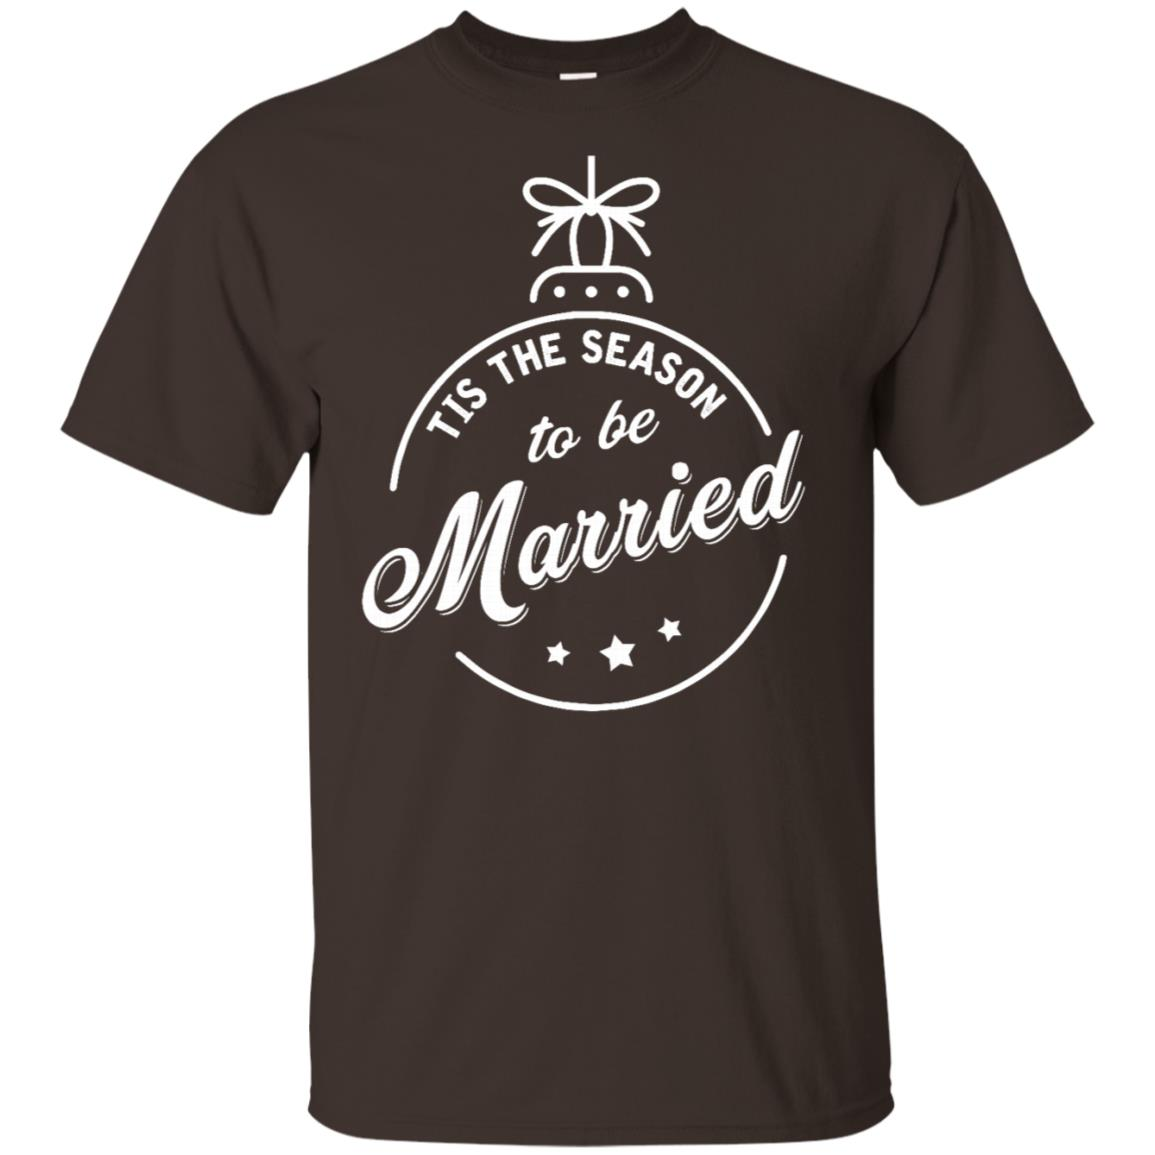 Tis The Season To Be Married Unisex Short Sleeve